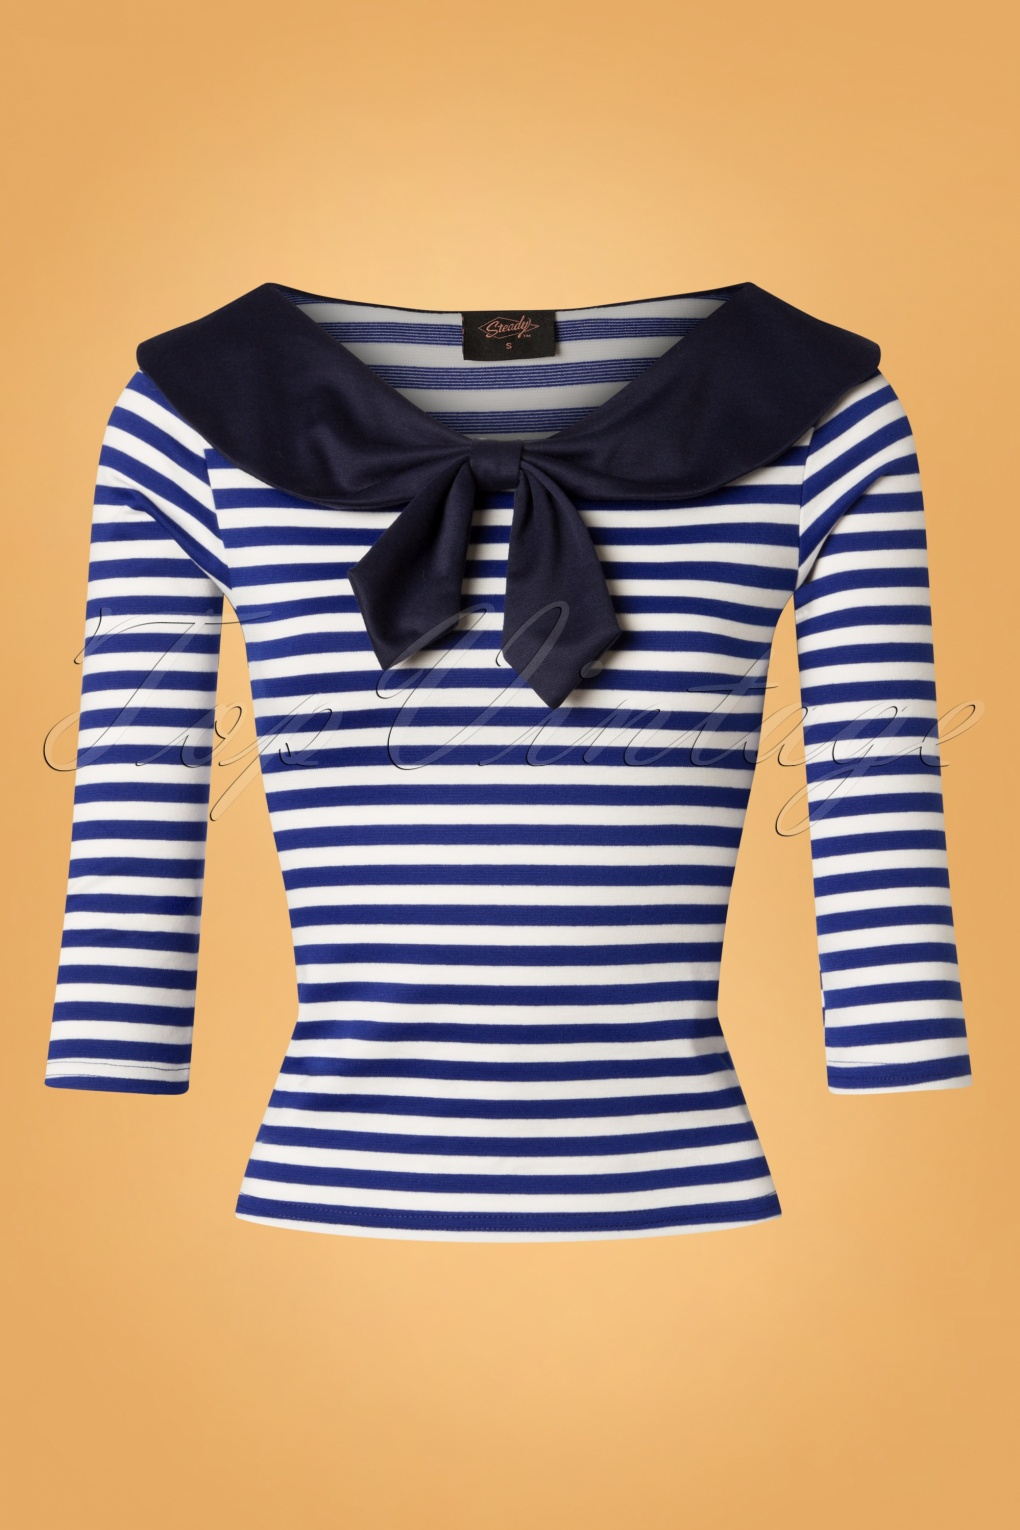 Vintage Sailor Clothes, Nautical Theme Clothing 50s Betsy Stripes Tie Top in Blue and White £40.33 AT vintagedancer.com